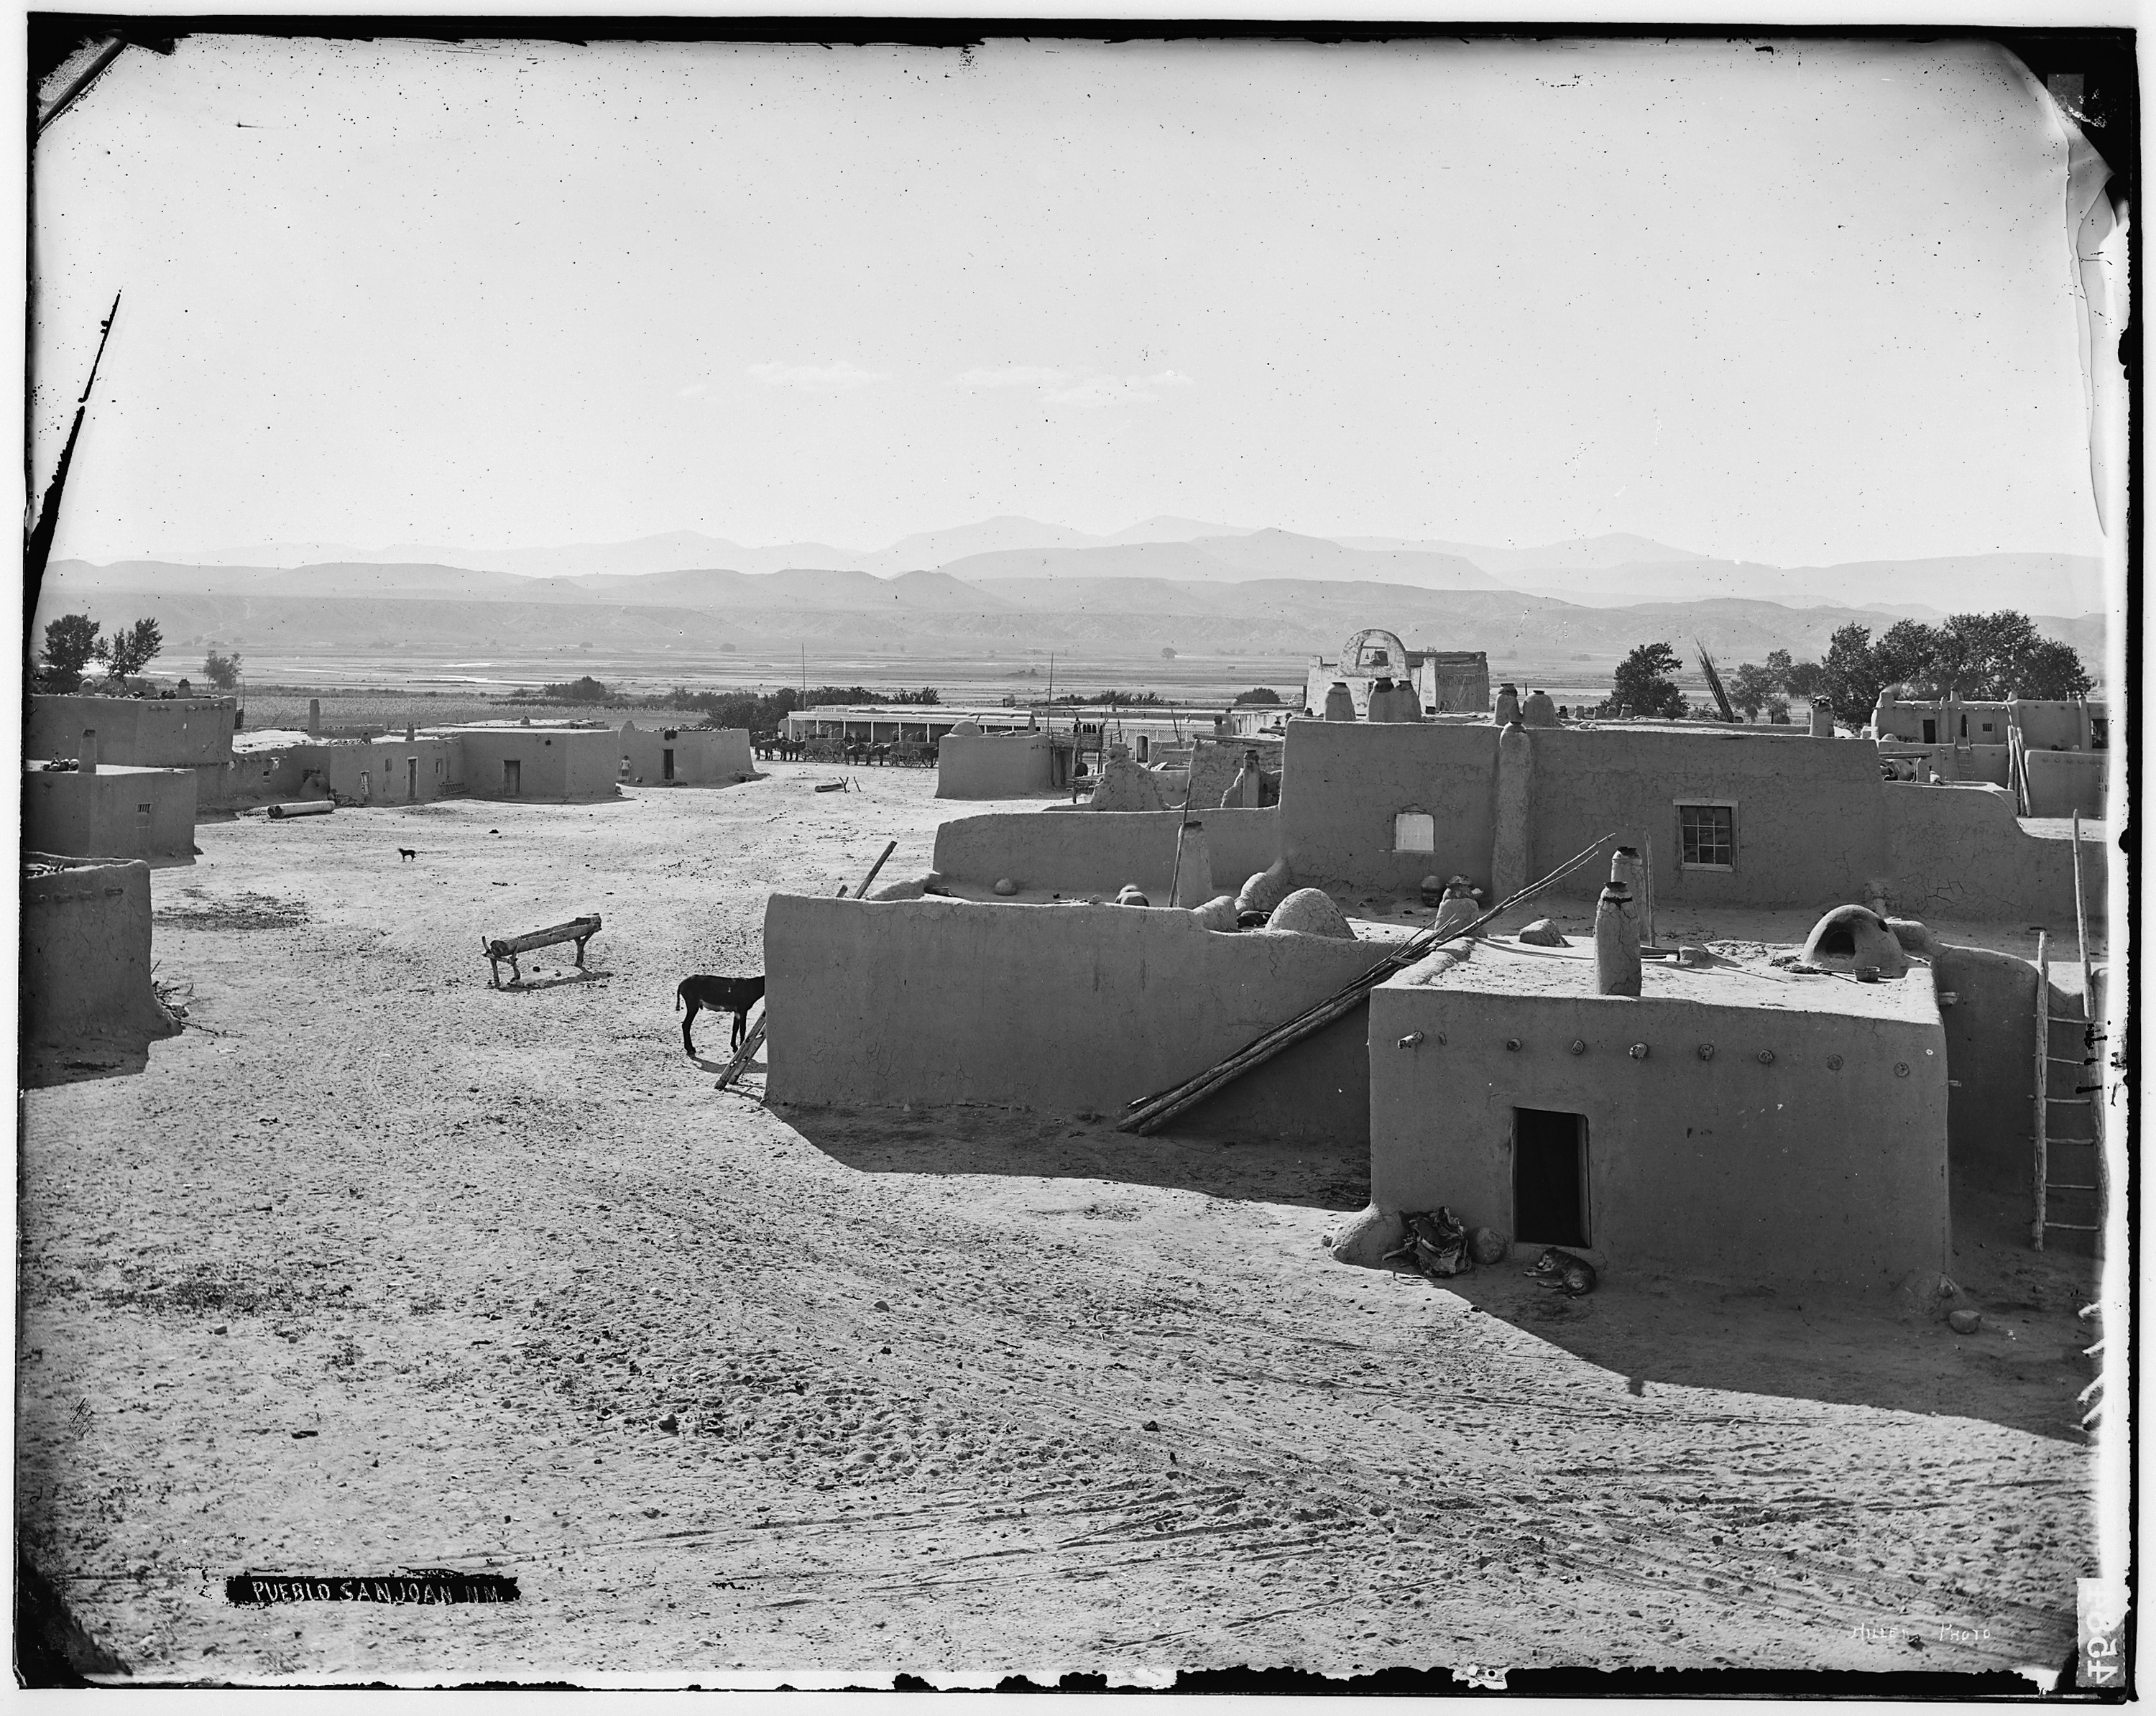 san juan pueblo guys The tewa name for san juan pueblo is ohke, the meaning of which is unknown the word pueblo comes from the spanish for village it refers both to a certain style of southwest indian architecture, characterized by multistory, apartment-like buildings [.